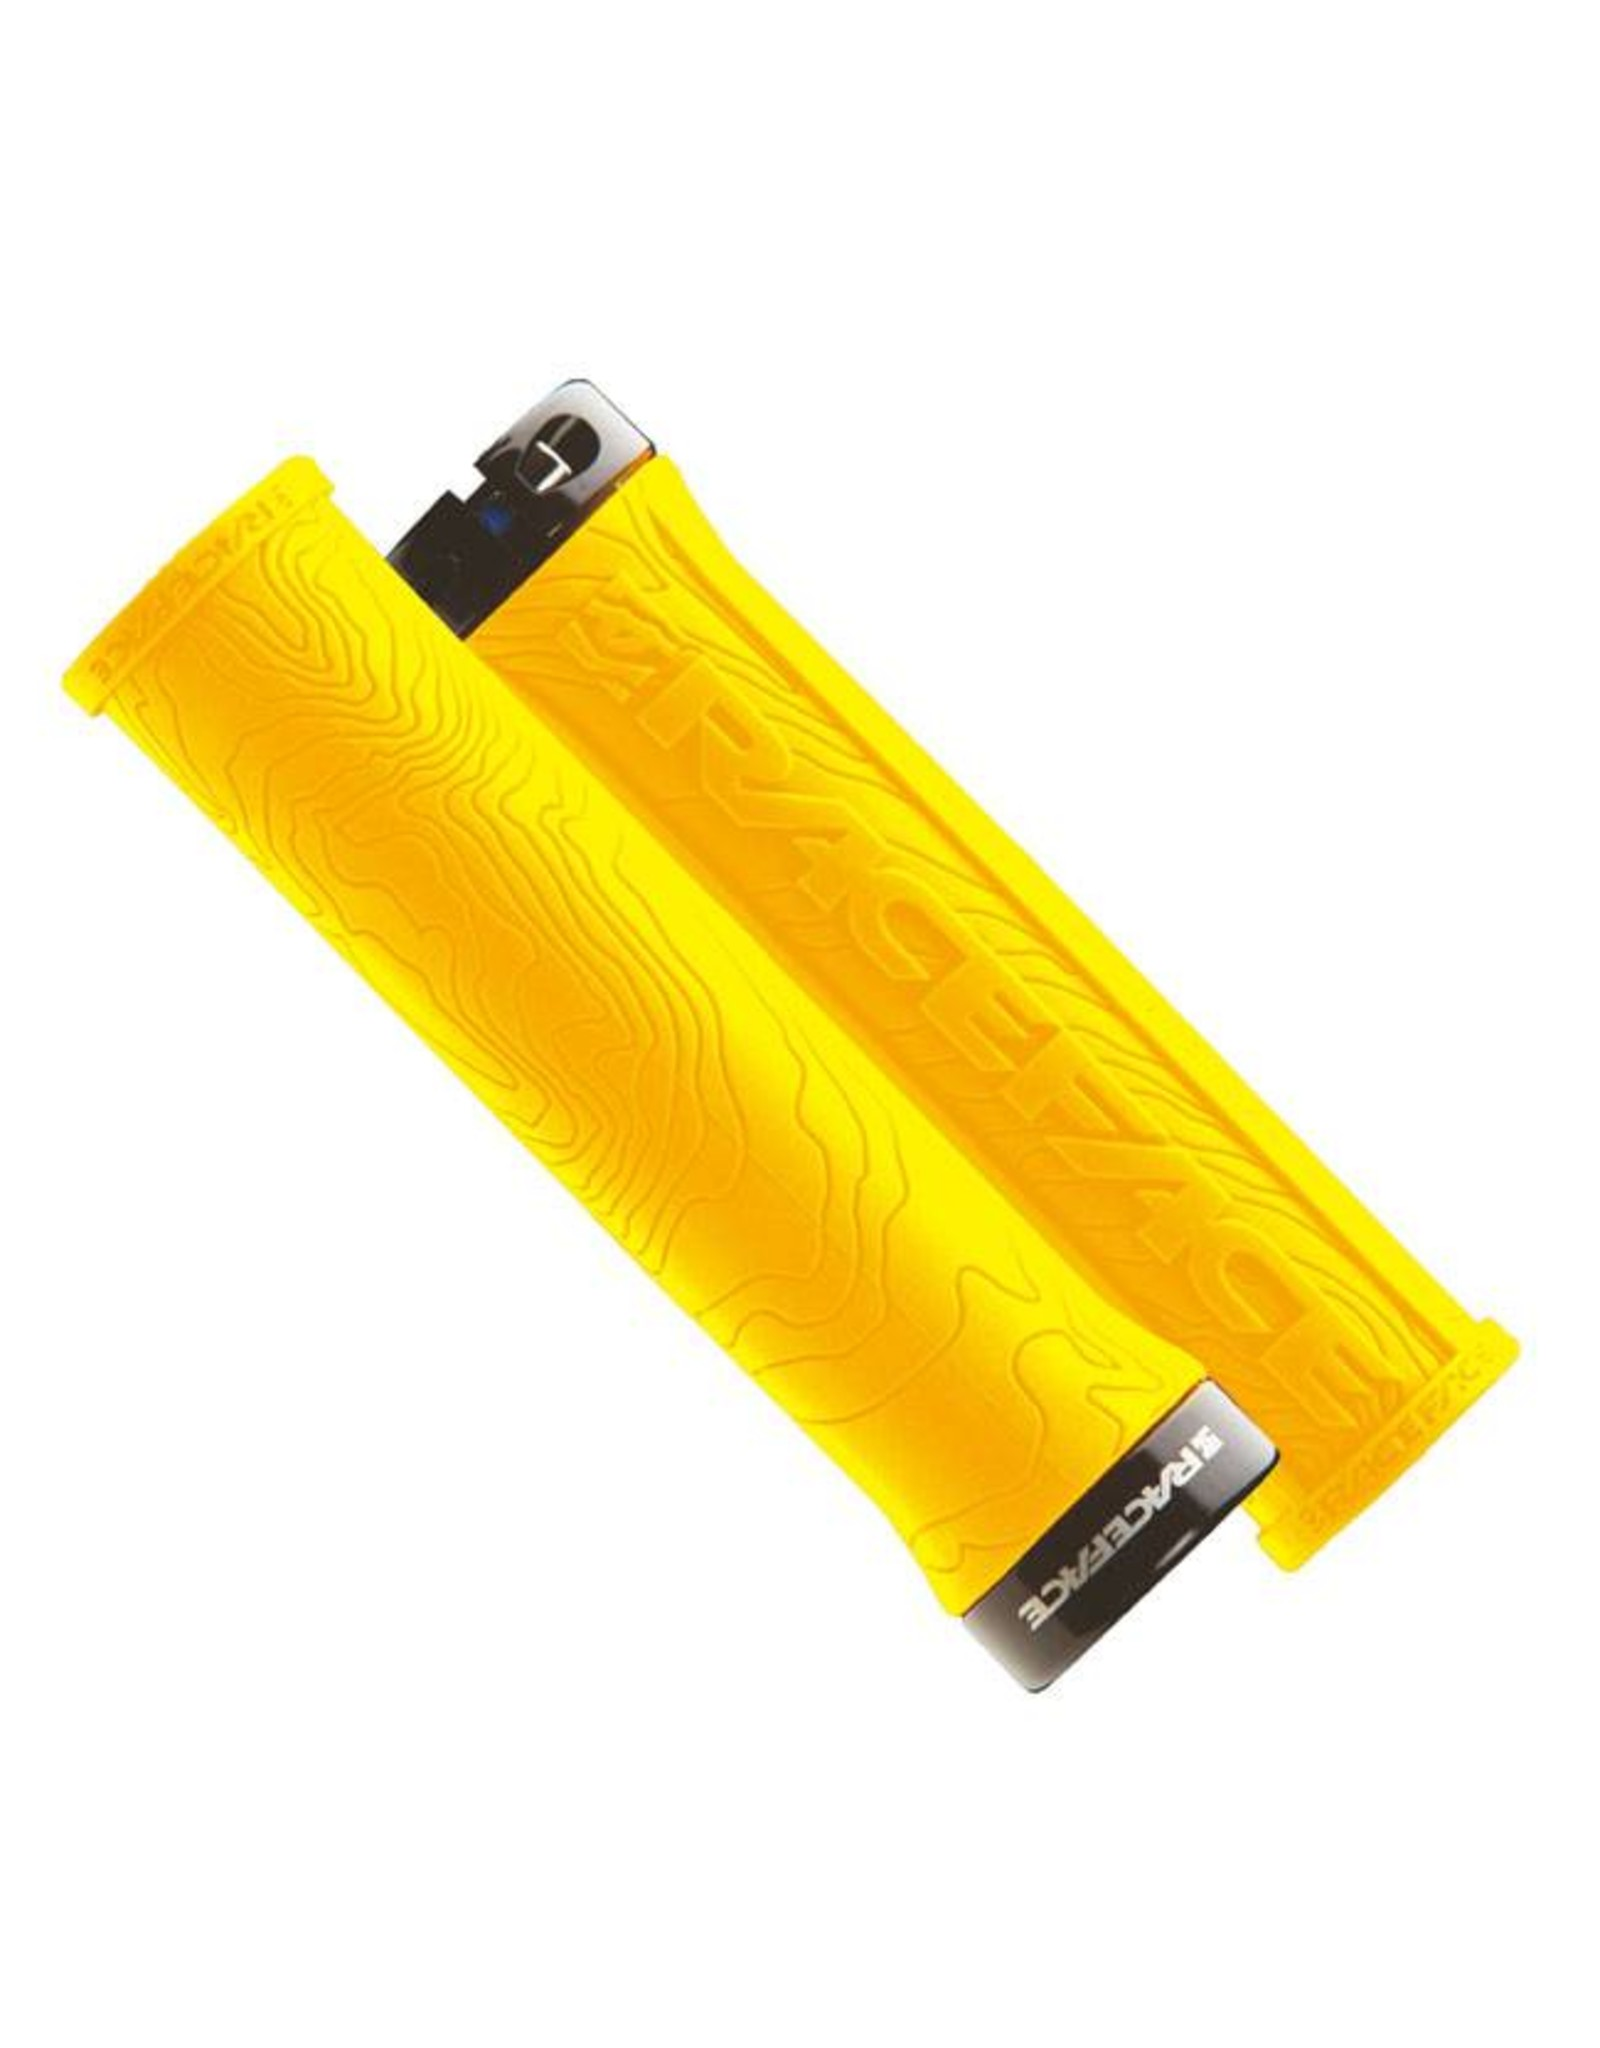 RaceFace RaceFace Half Nelson Lock-On Grip Yellow